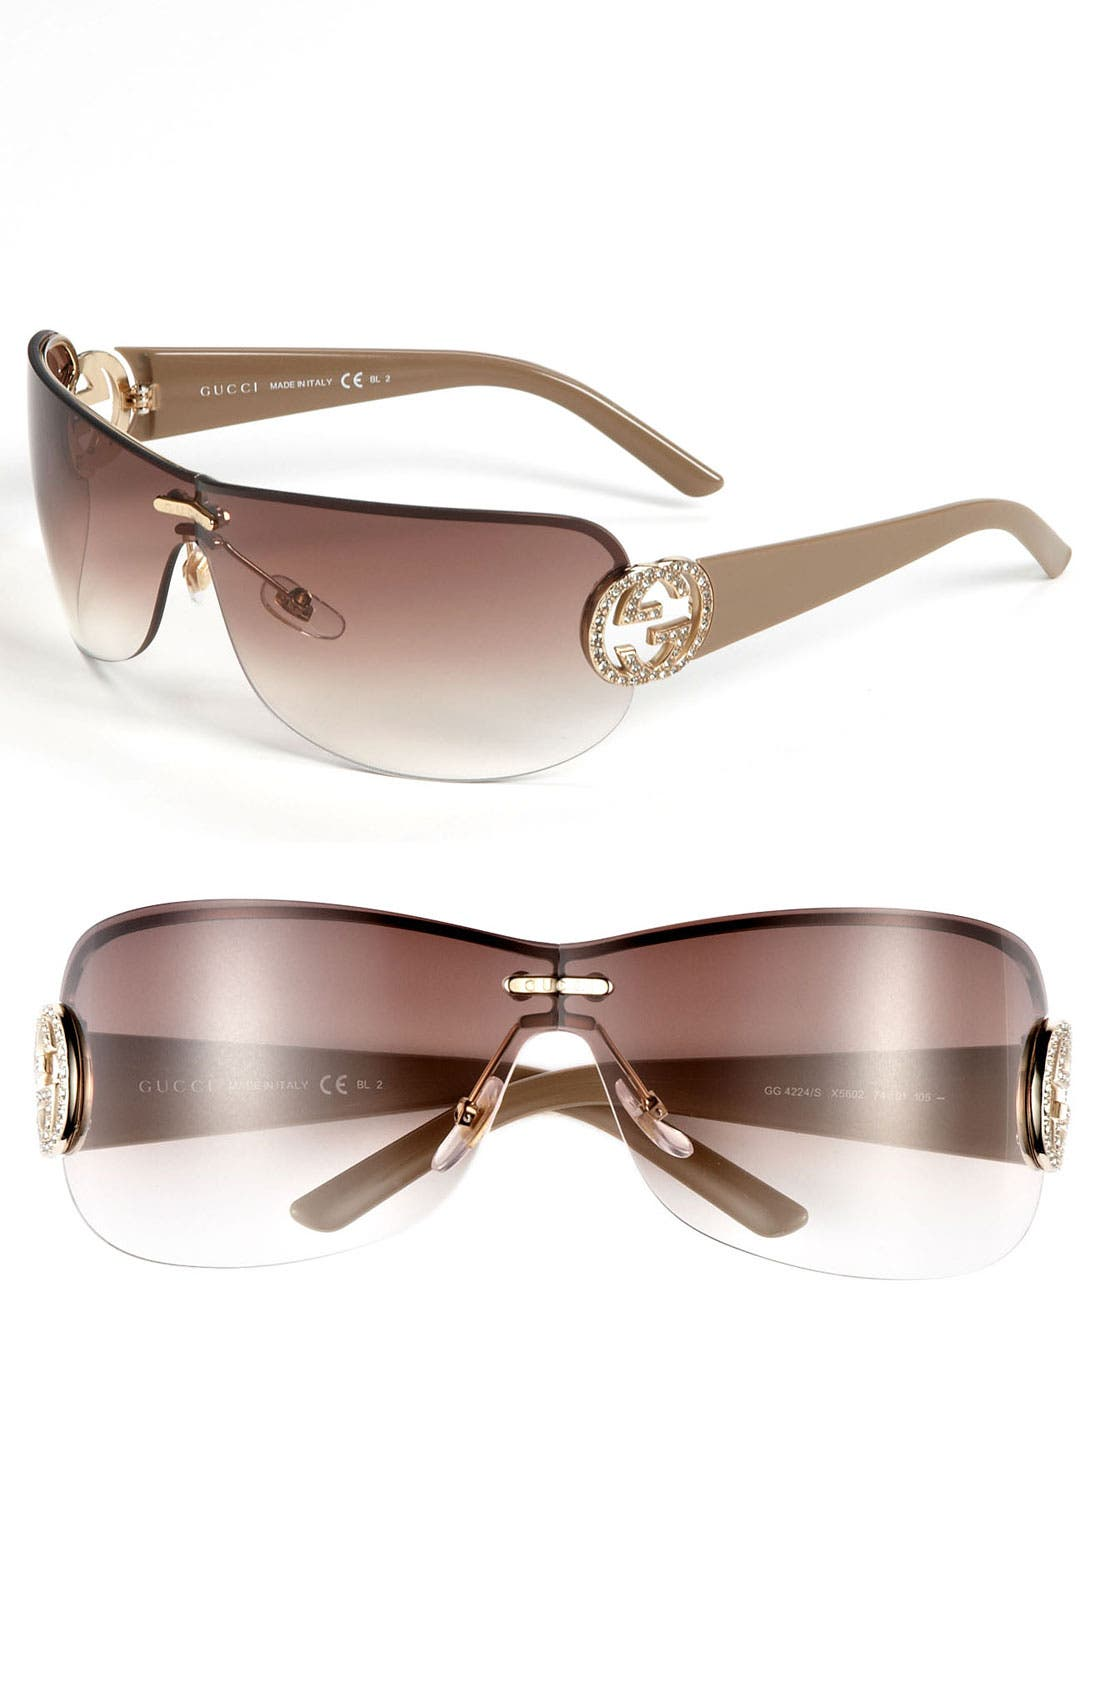 Main Image - Gucci 74mm Swarovski Crystal Rimless Shield Sunglasses